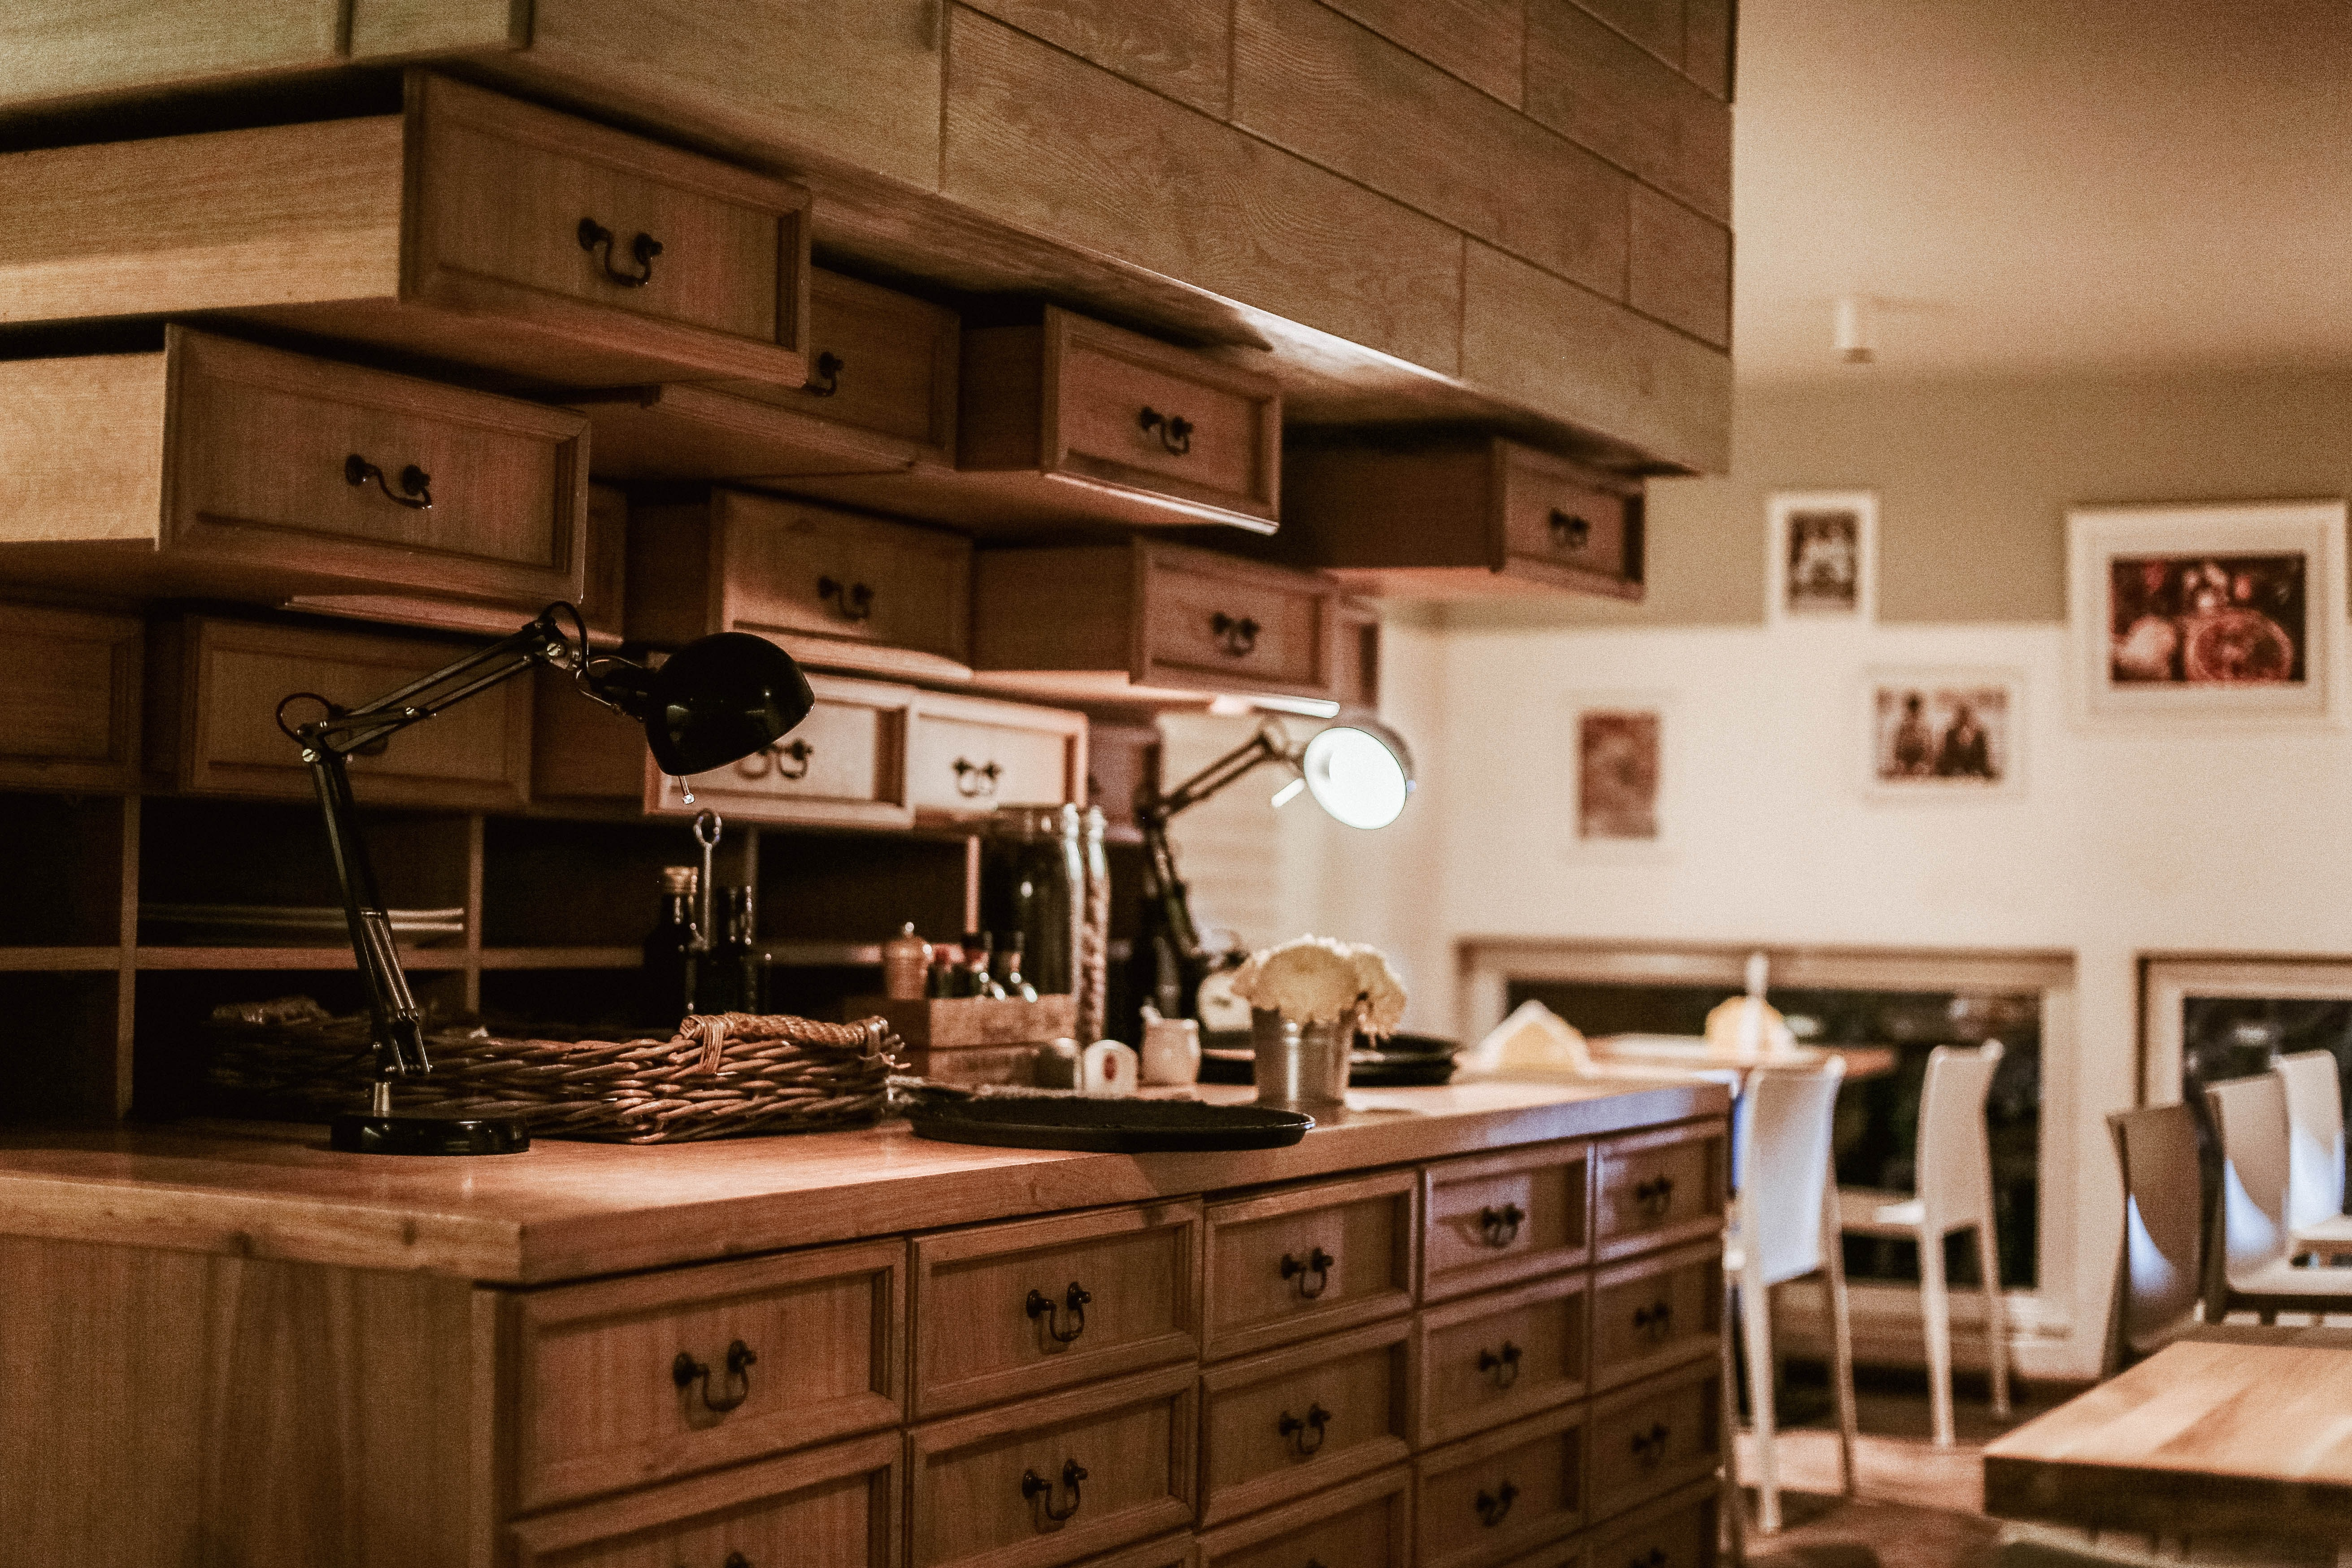 Rows of wooden drawers surrounding a small workplace in middle of well lit room